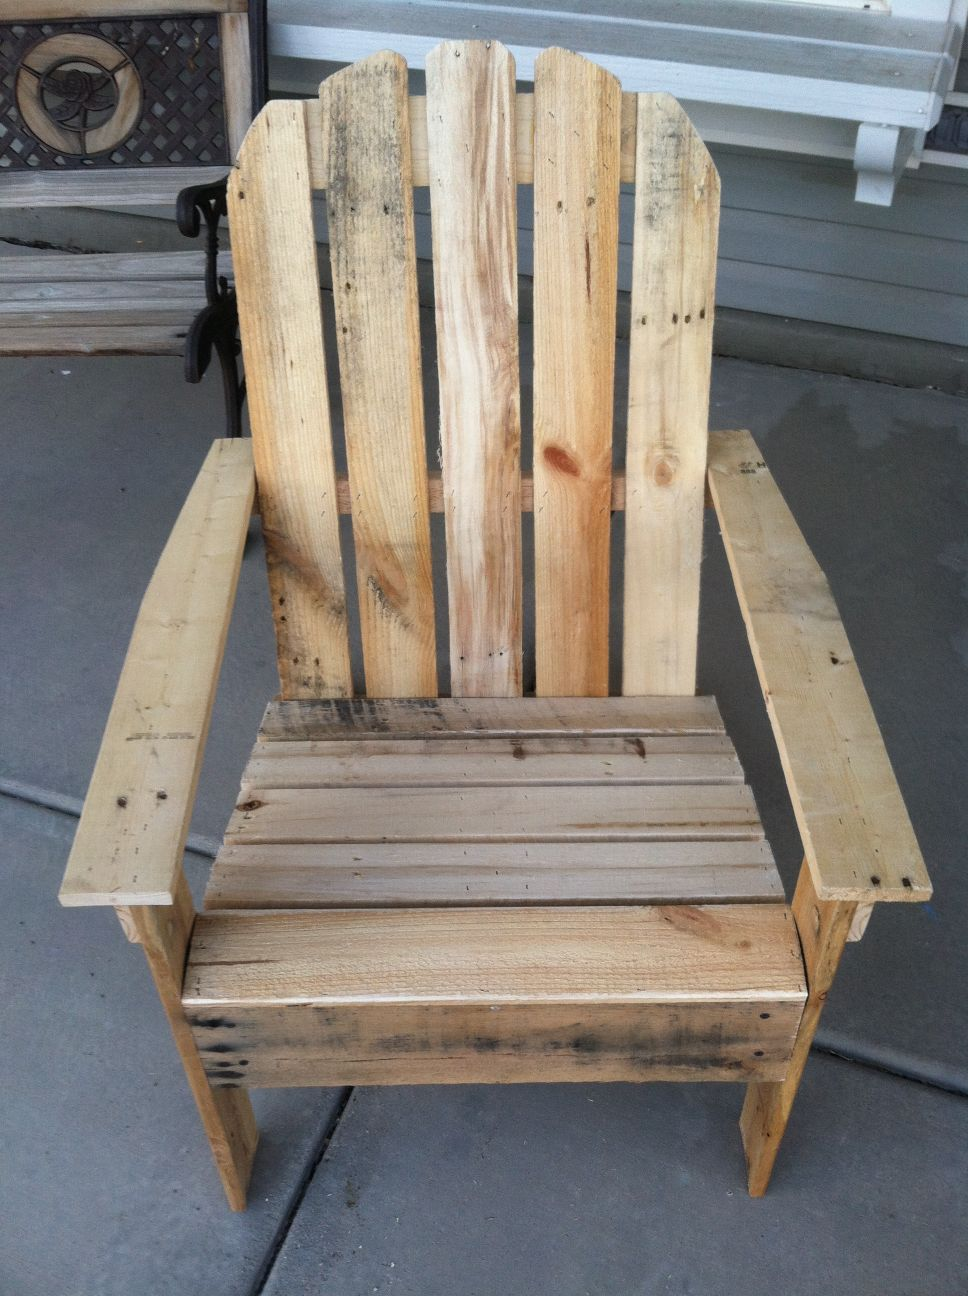 Pallet bookshelf and pallet outdoor chairdiy pallet for Pallet furniture projects